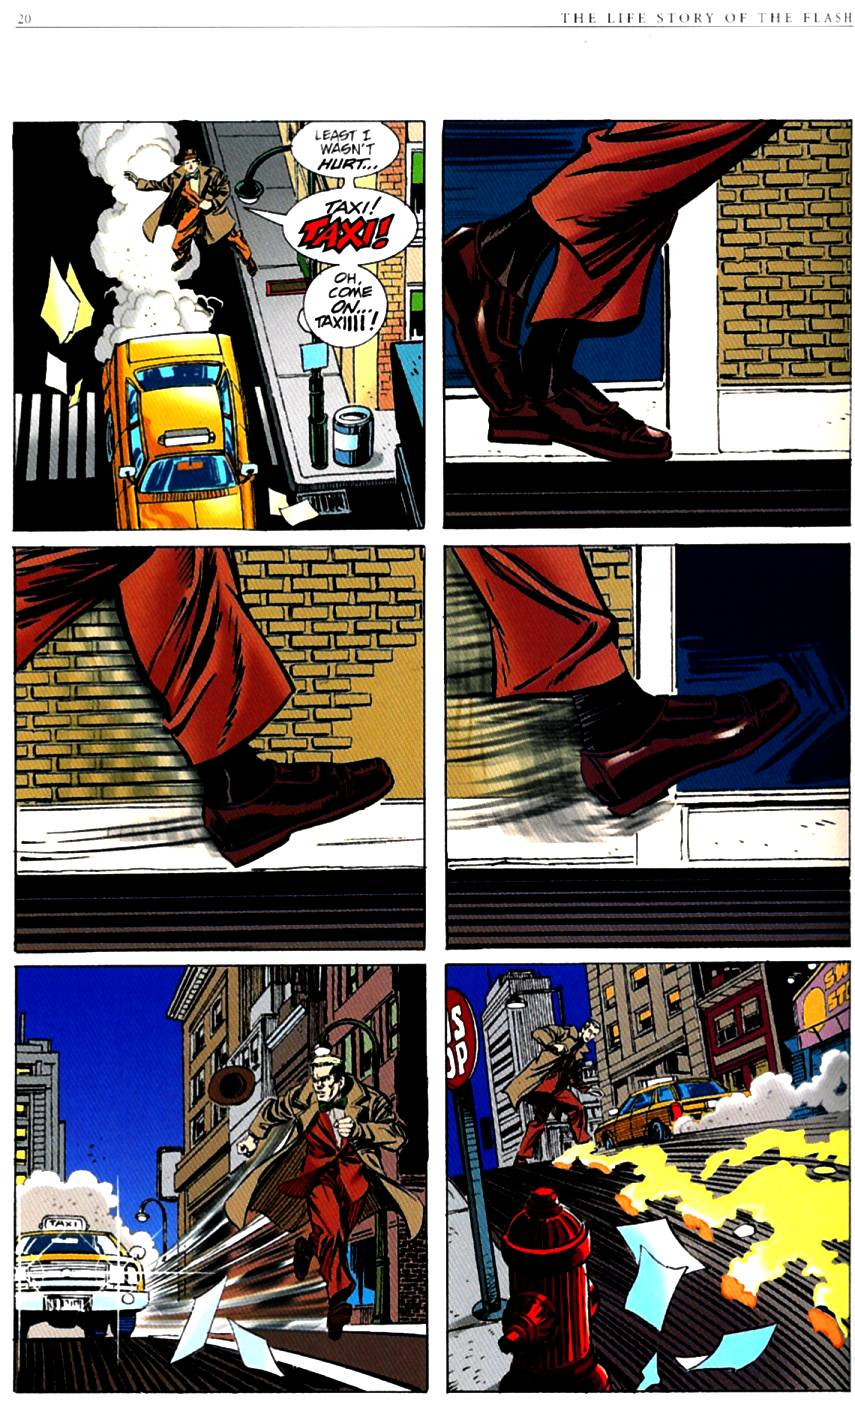 Read online The Life Story of the Flash comic -  Issue # Full - 22